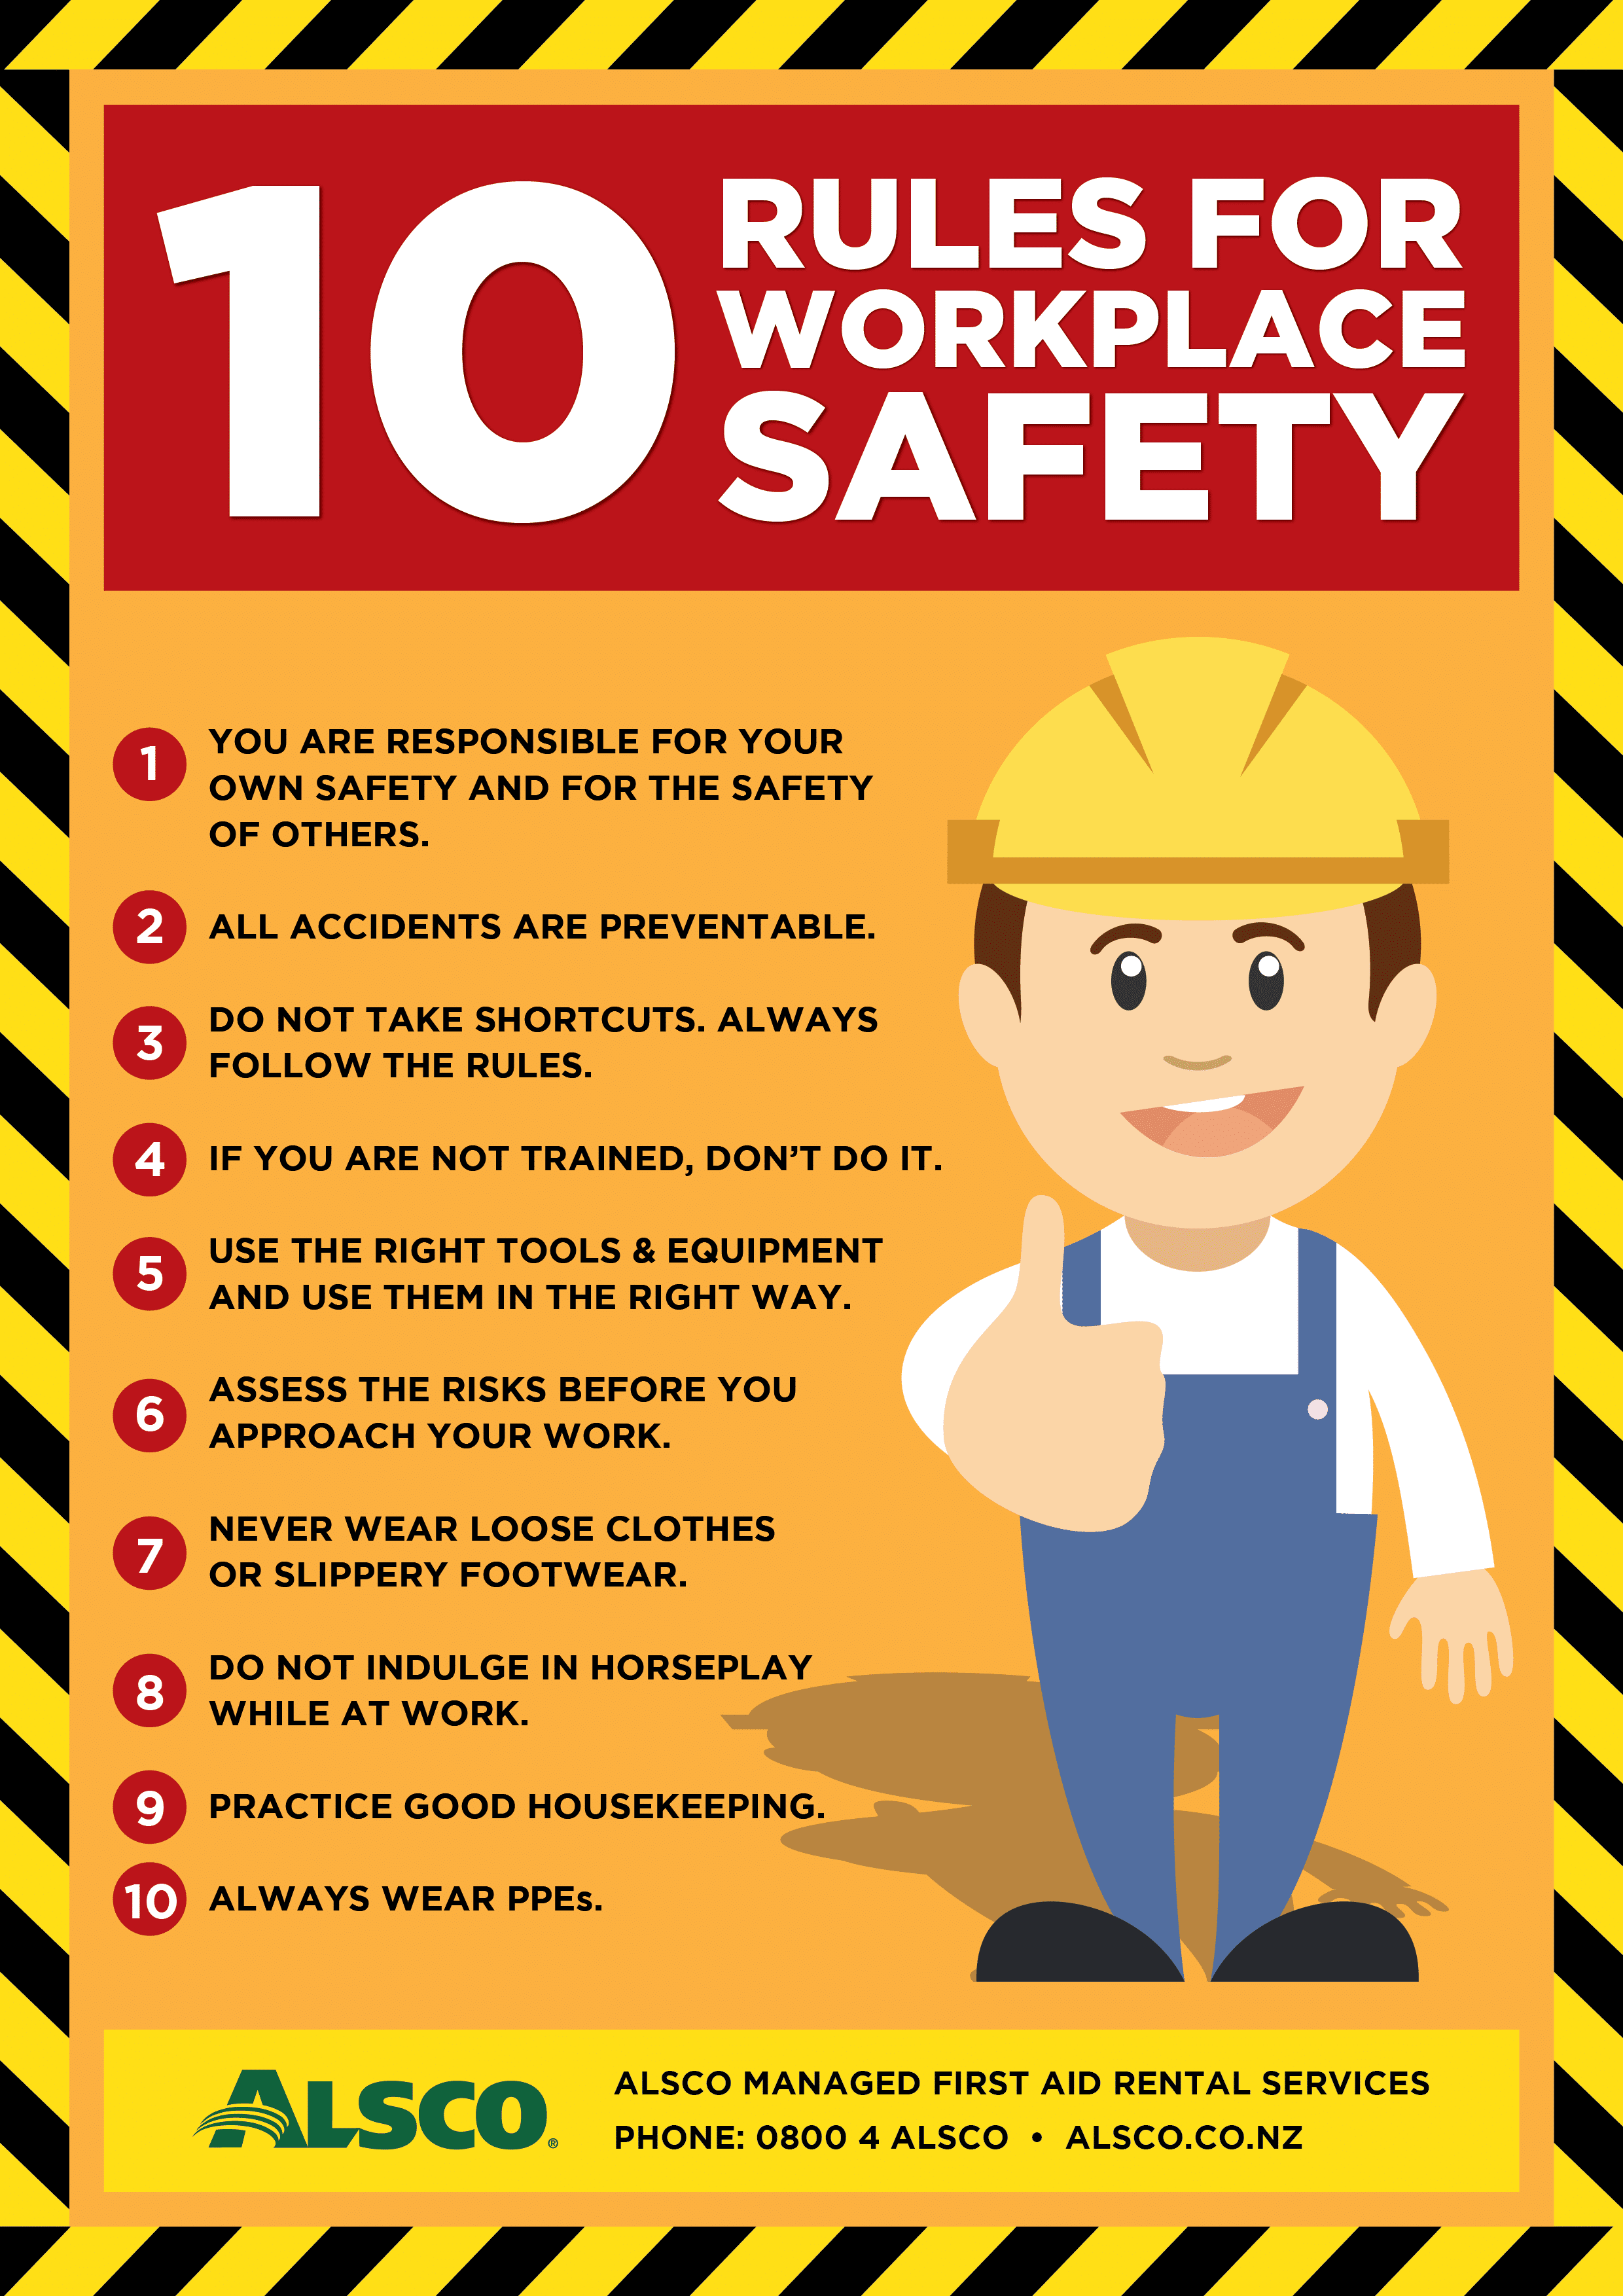 Related image Workplace safety, Workplace safety slogans